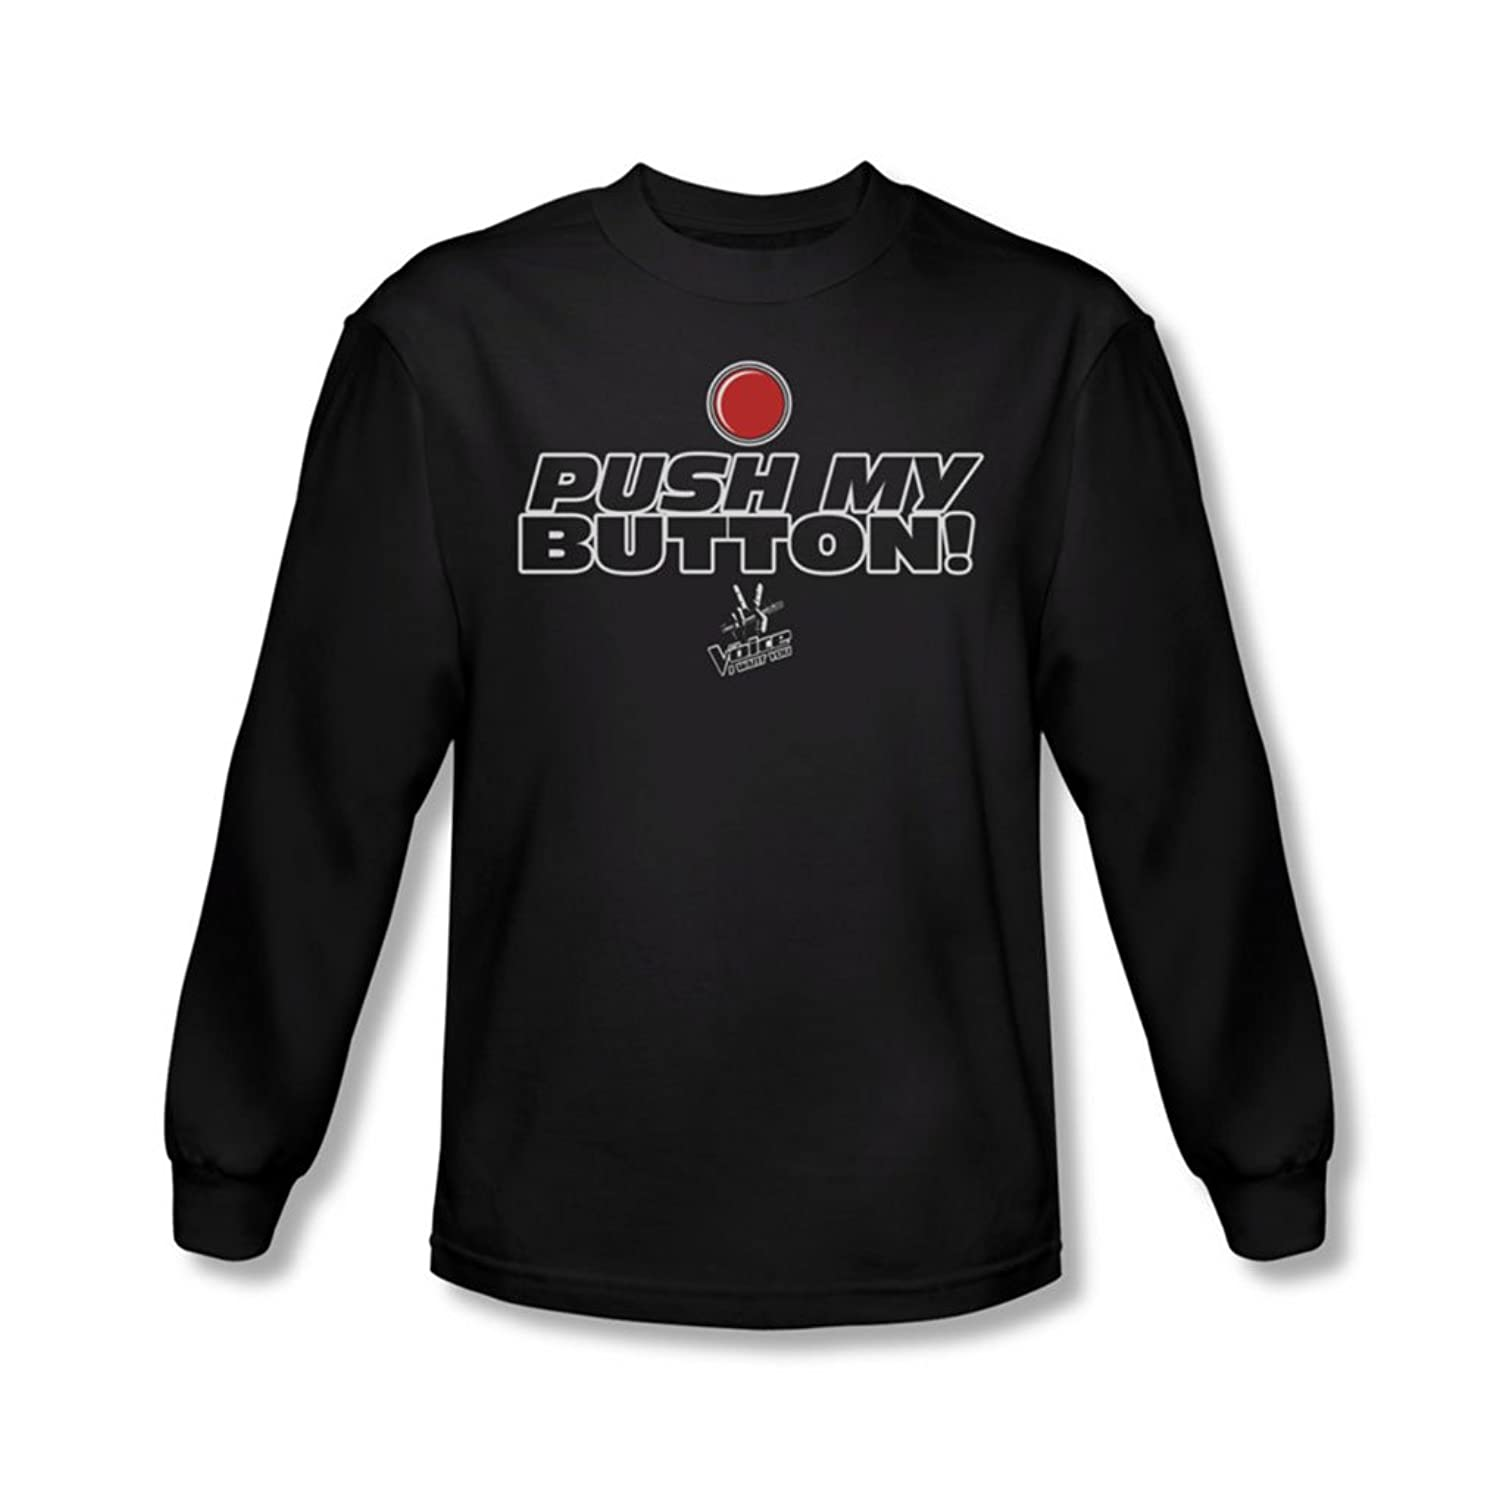 The Voice - Mens Push My Button Long Sleeve Shirt In Black